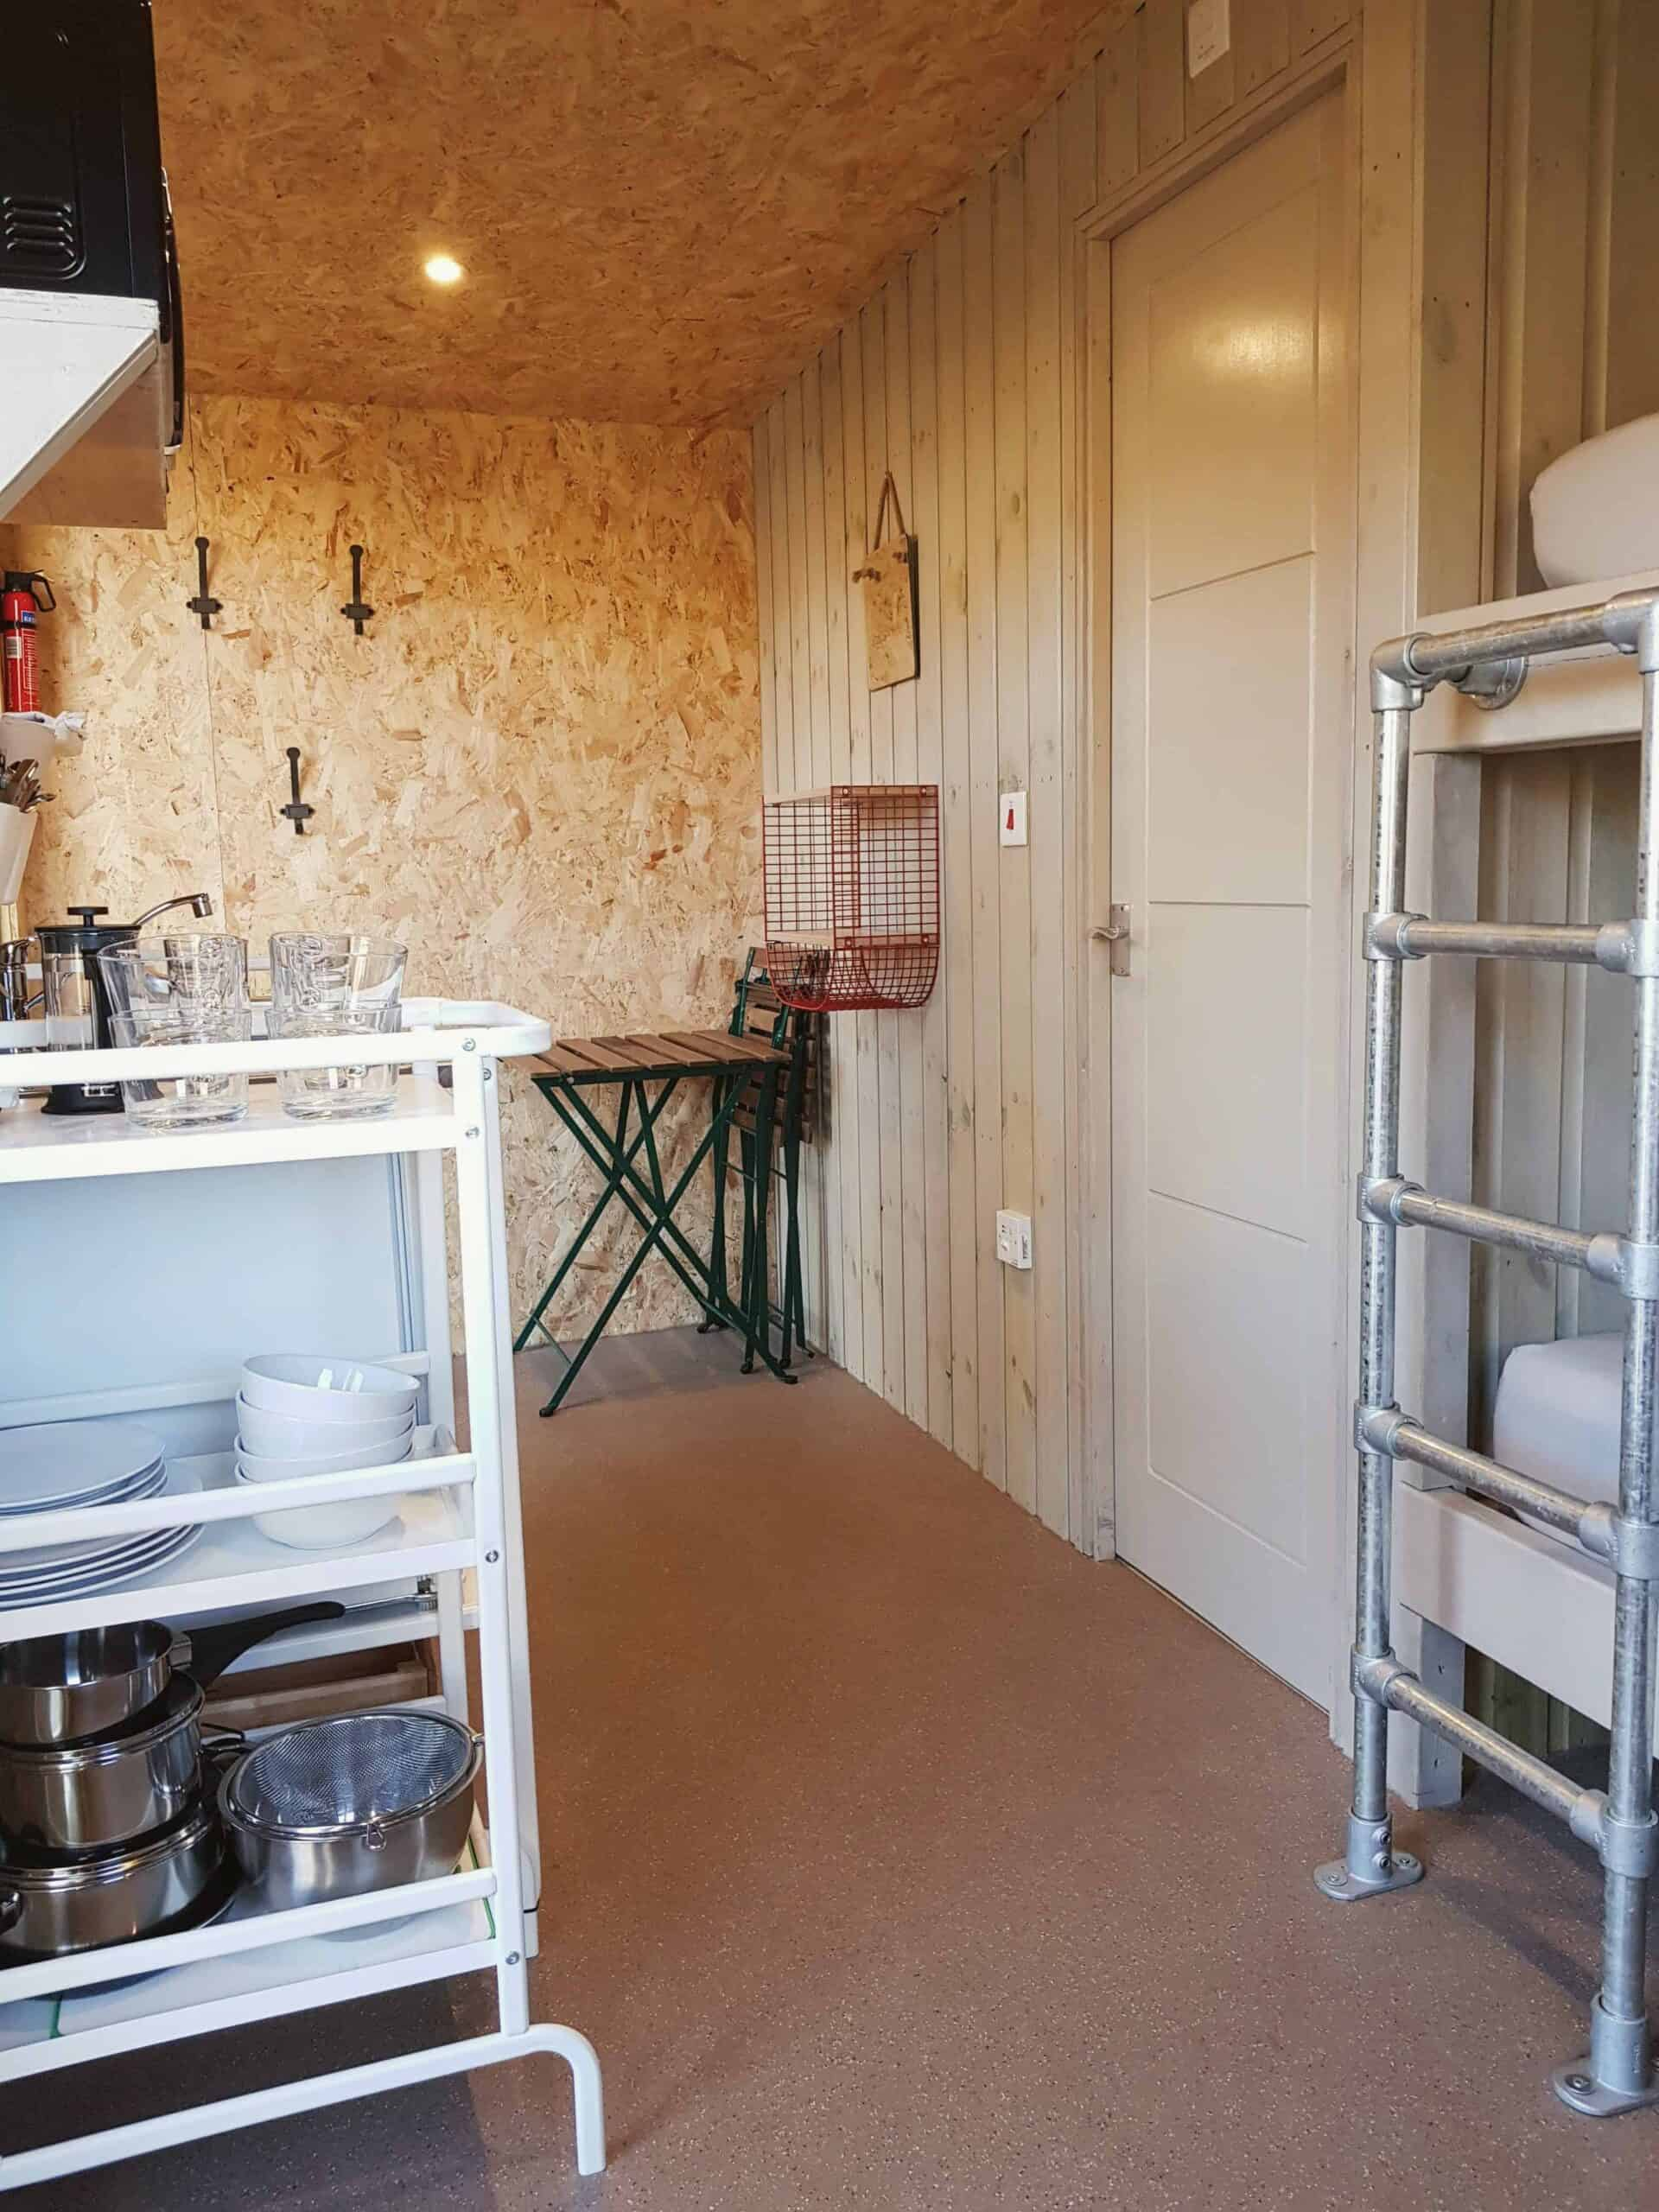 Cabin layout with hooks, table, kitchenette, bunk bed ladder, door to ensuite